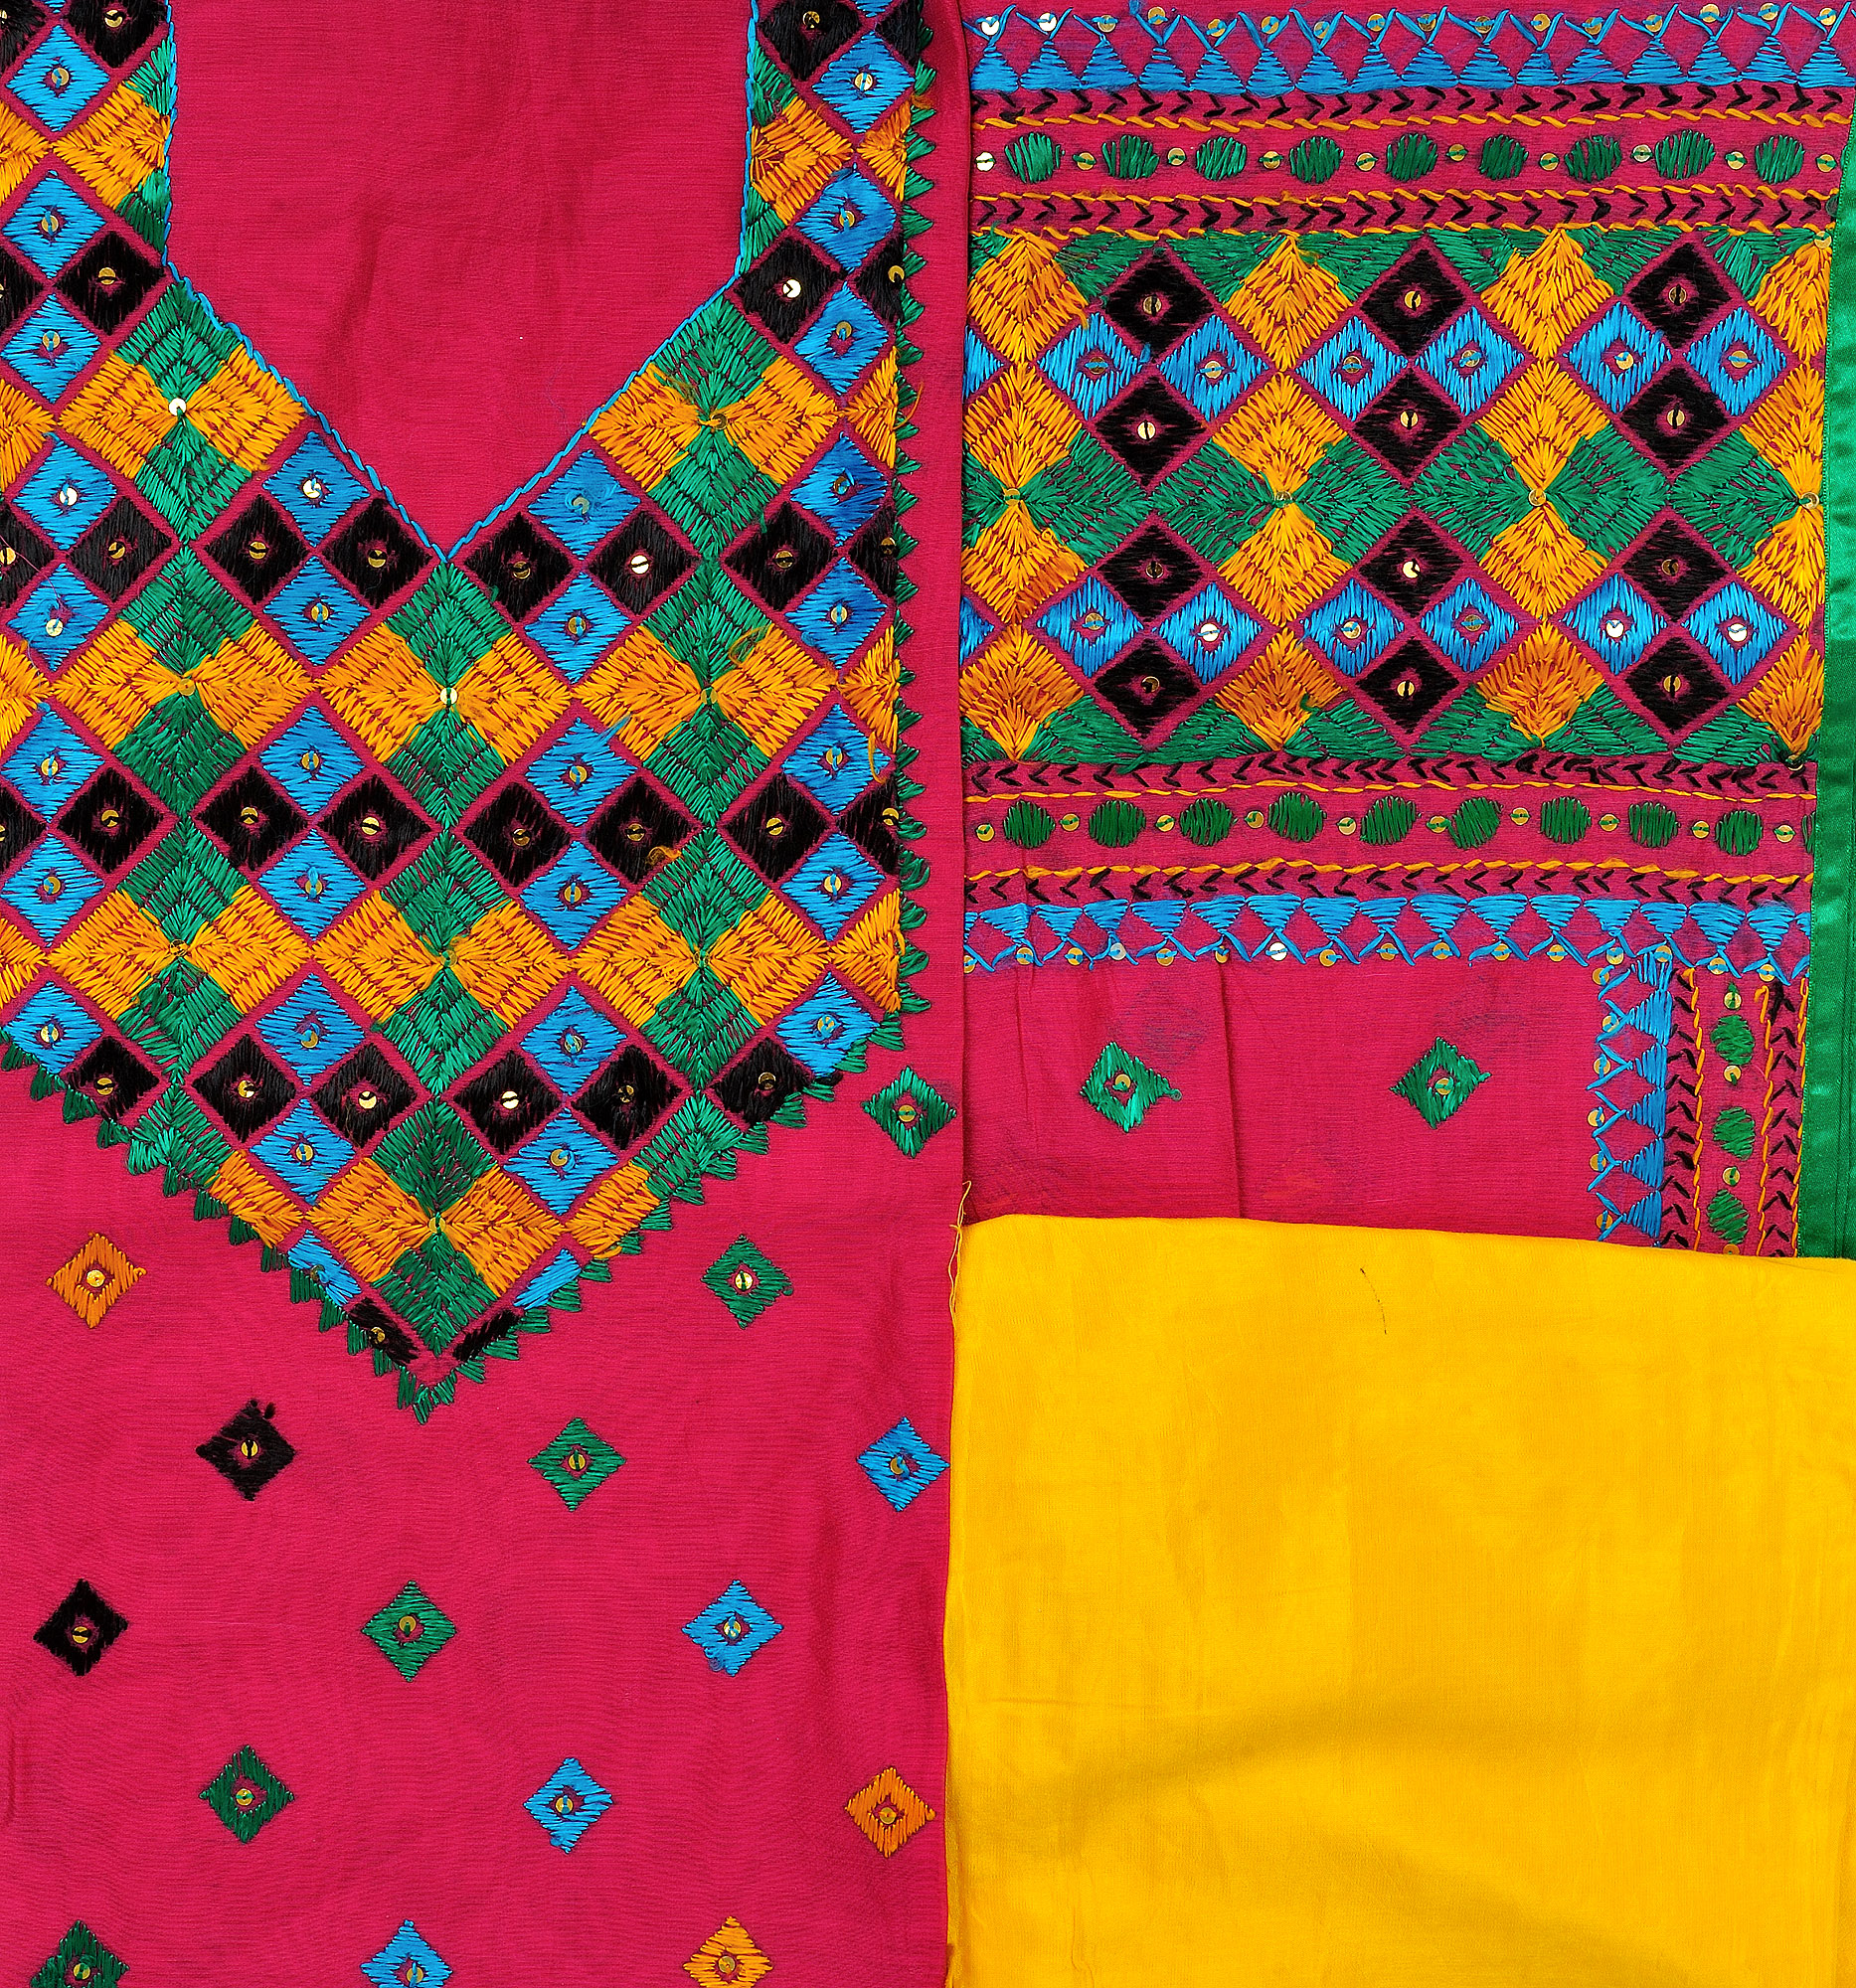 Pictures of phulkari embroidery